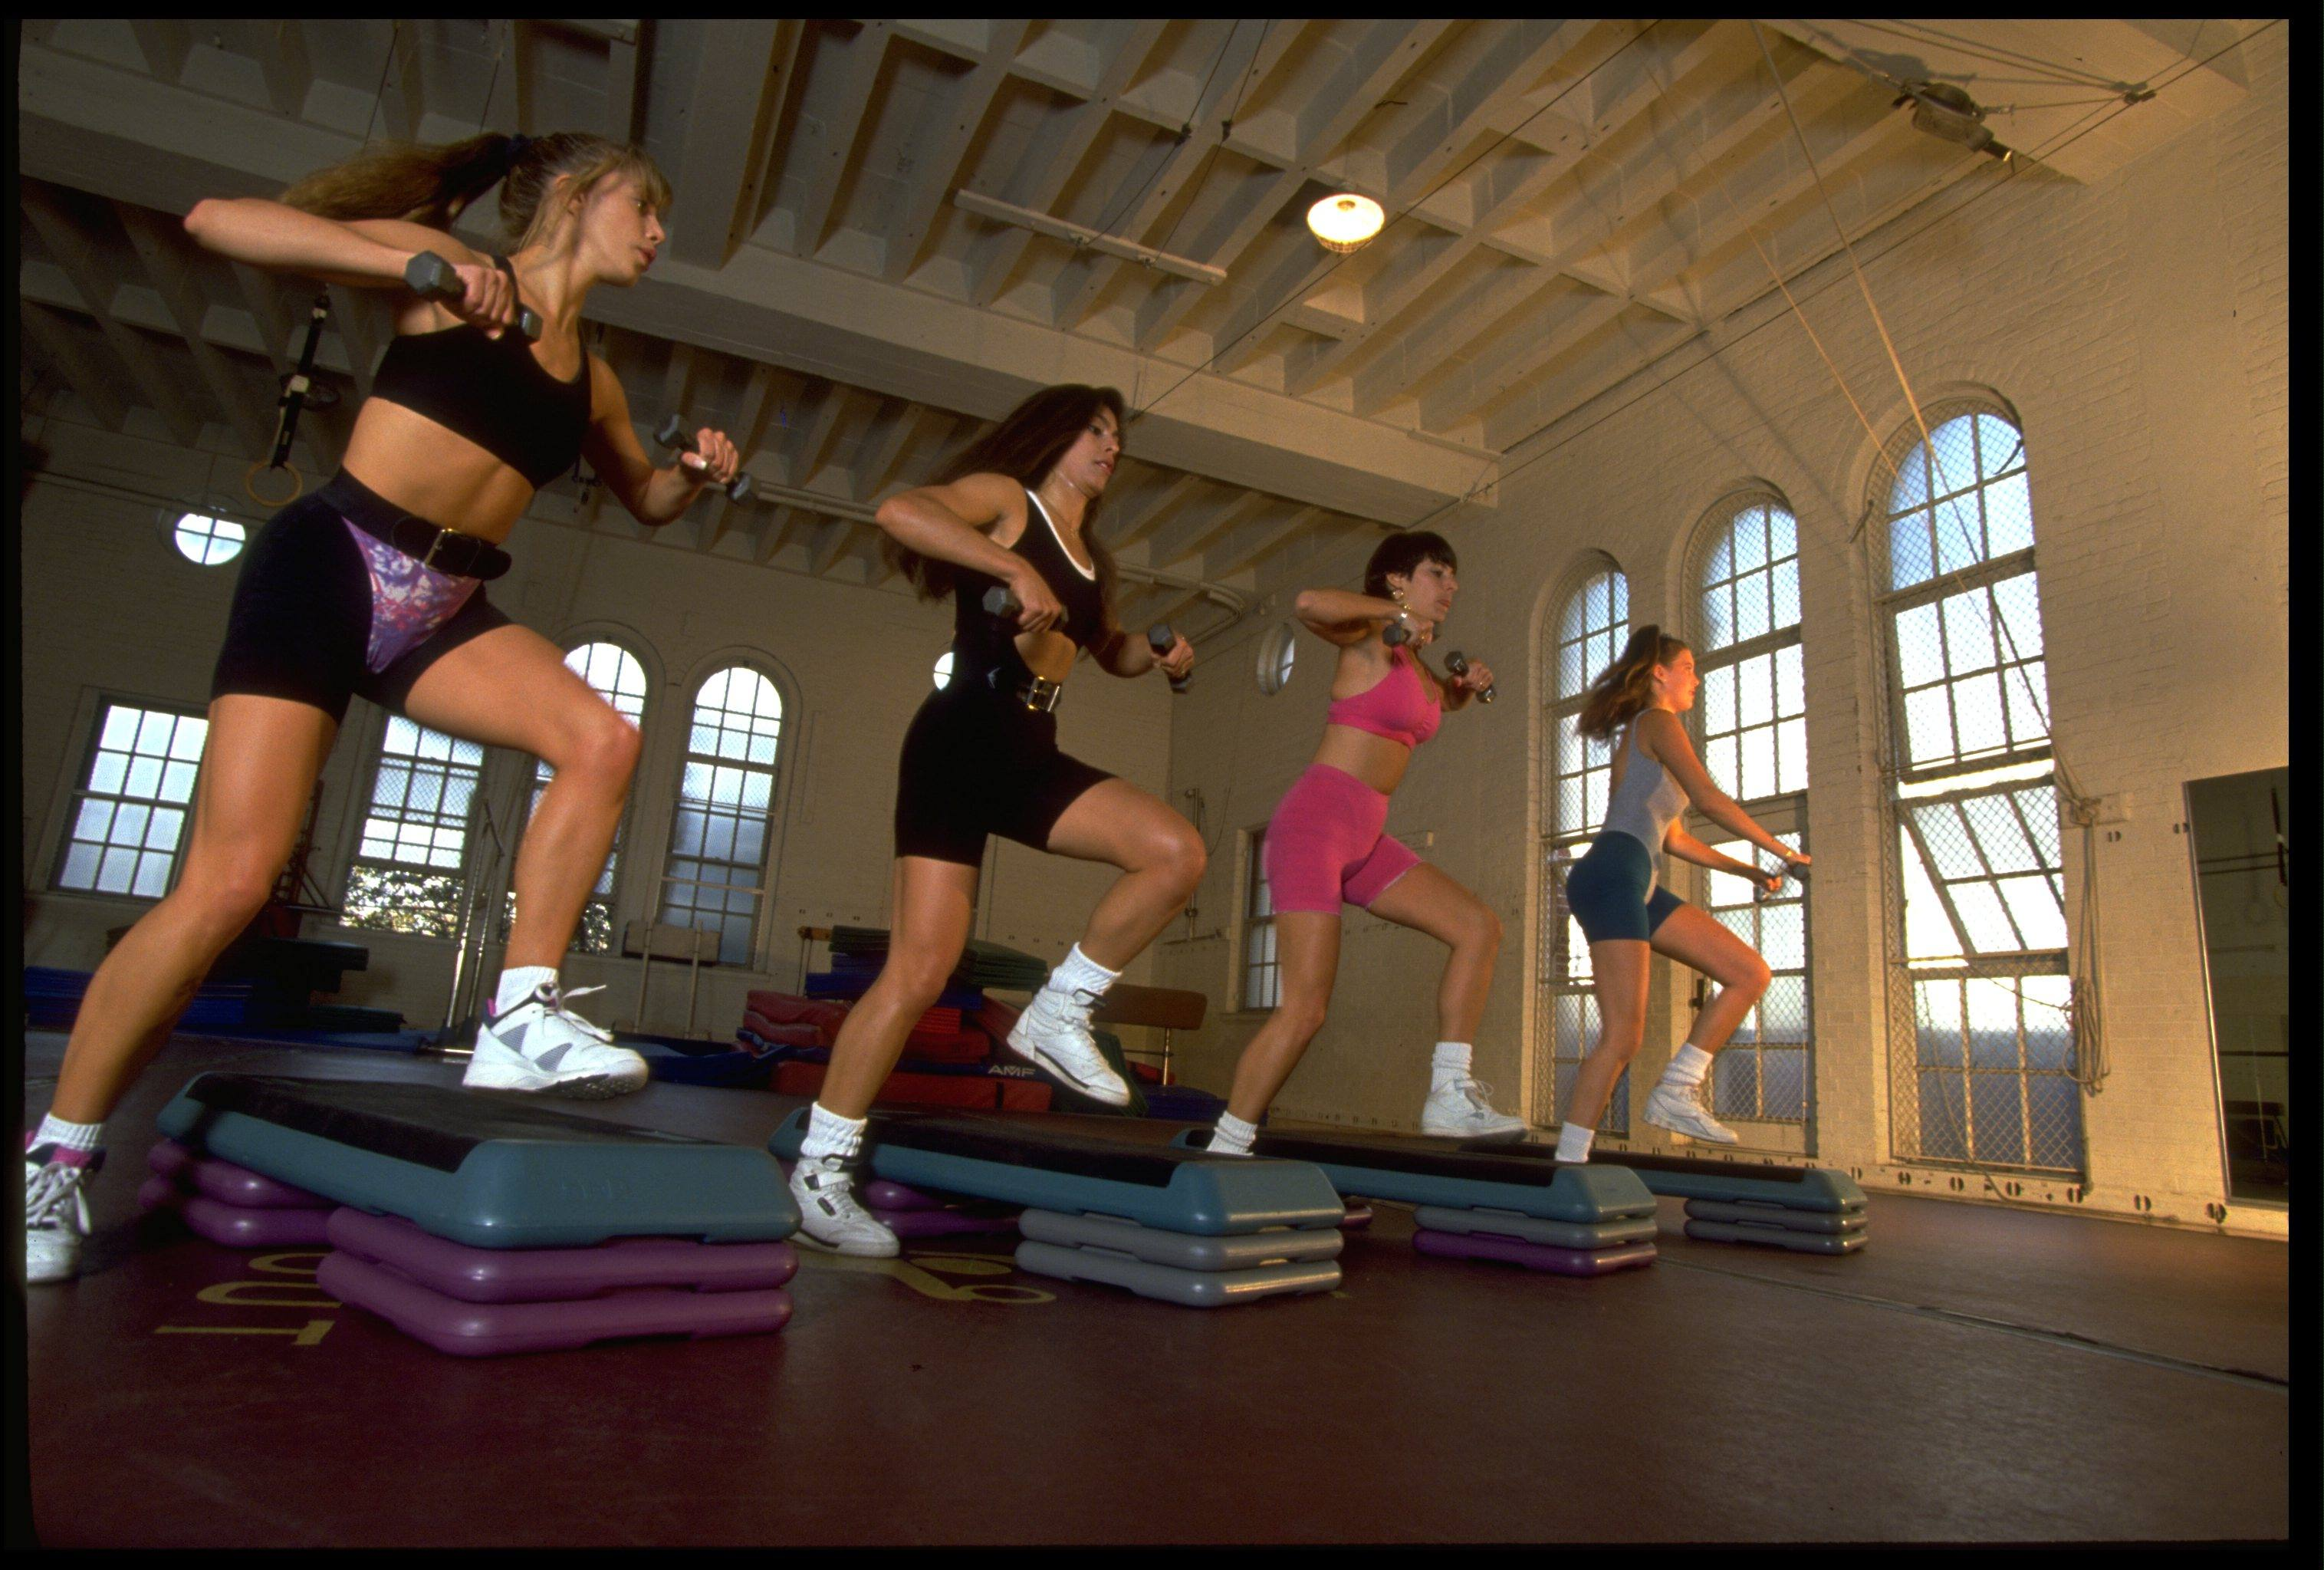 Women participate in an aerobics workout